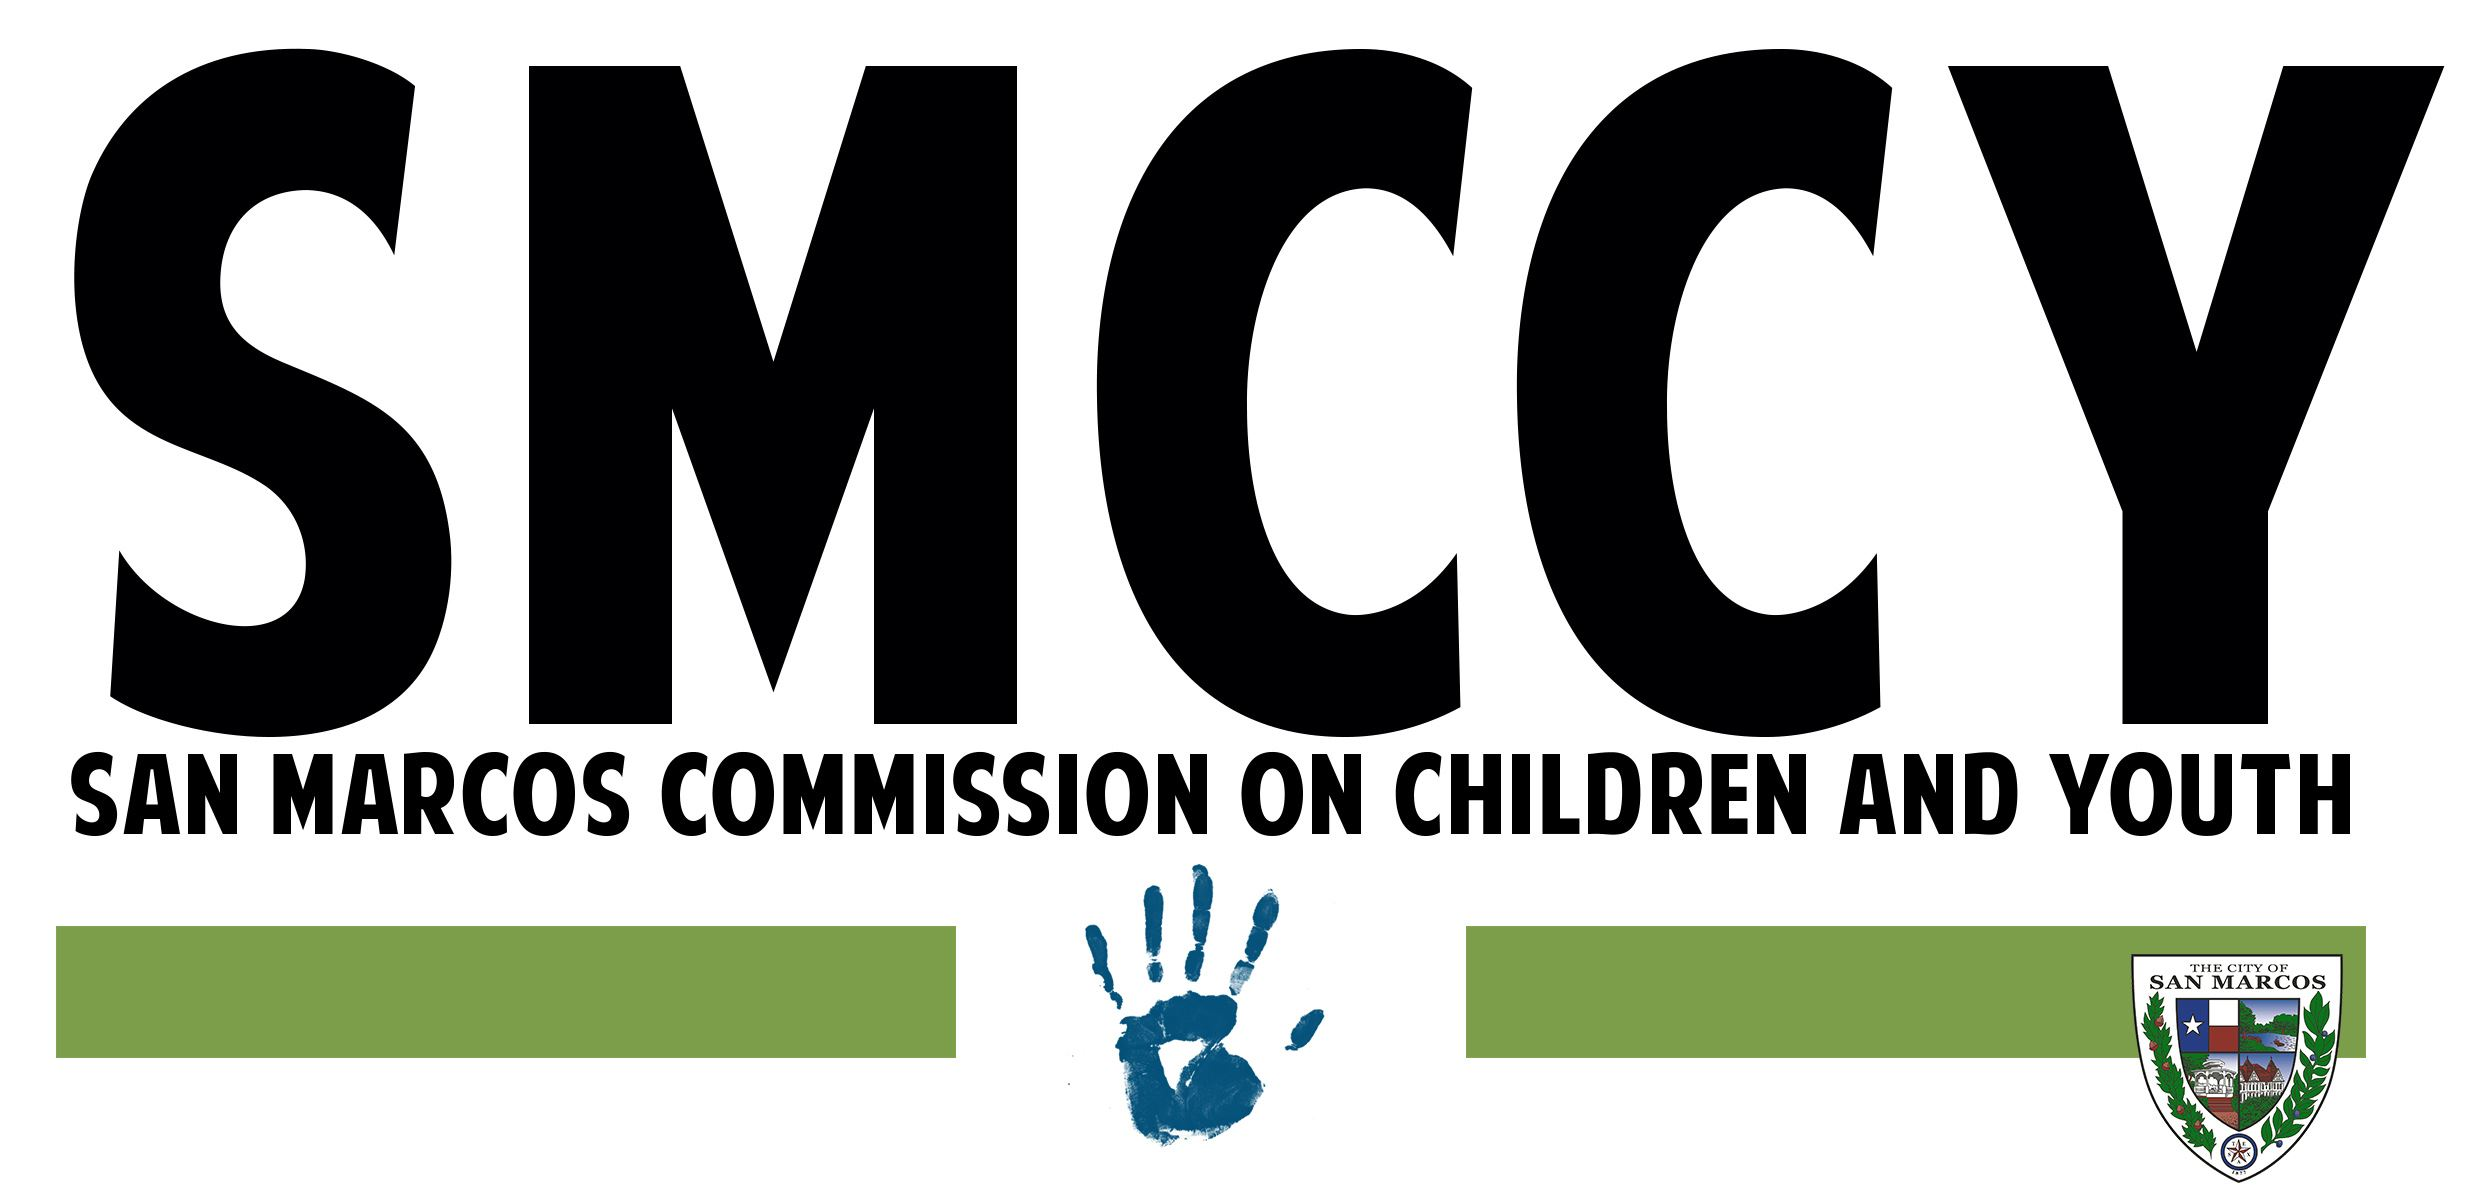 San Marcos Commission on Children and Youth Logo